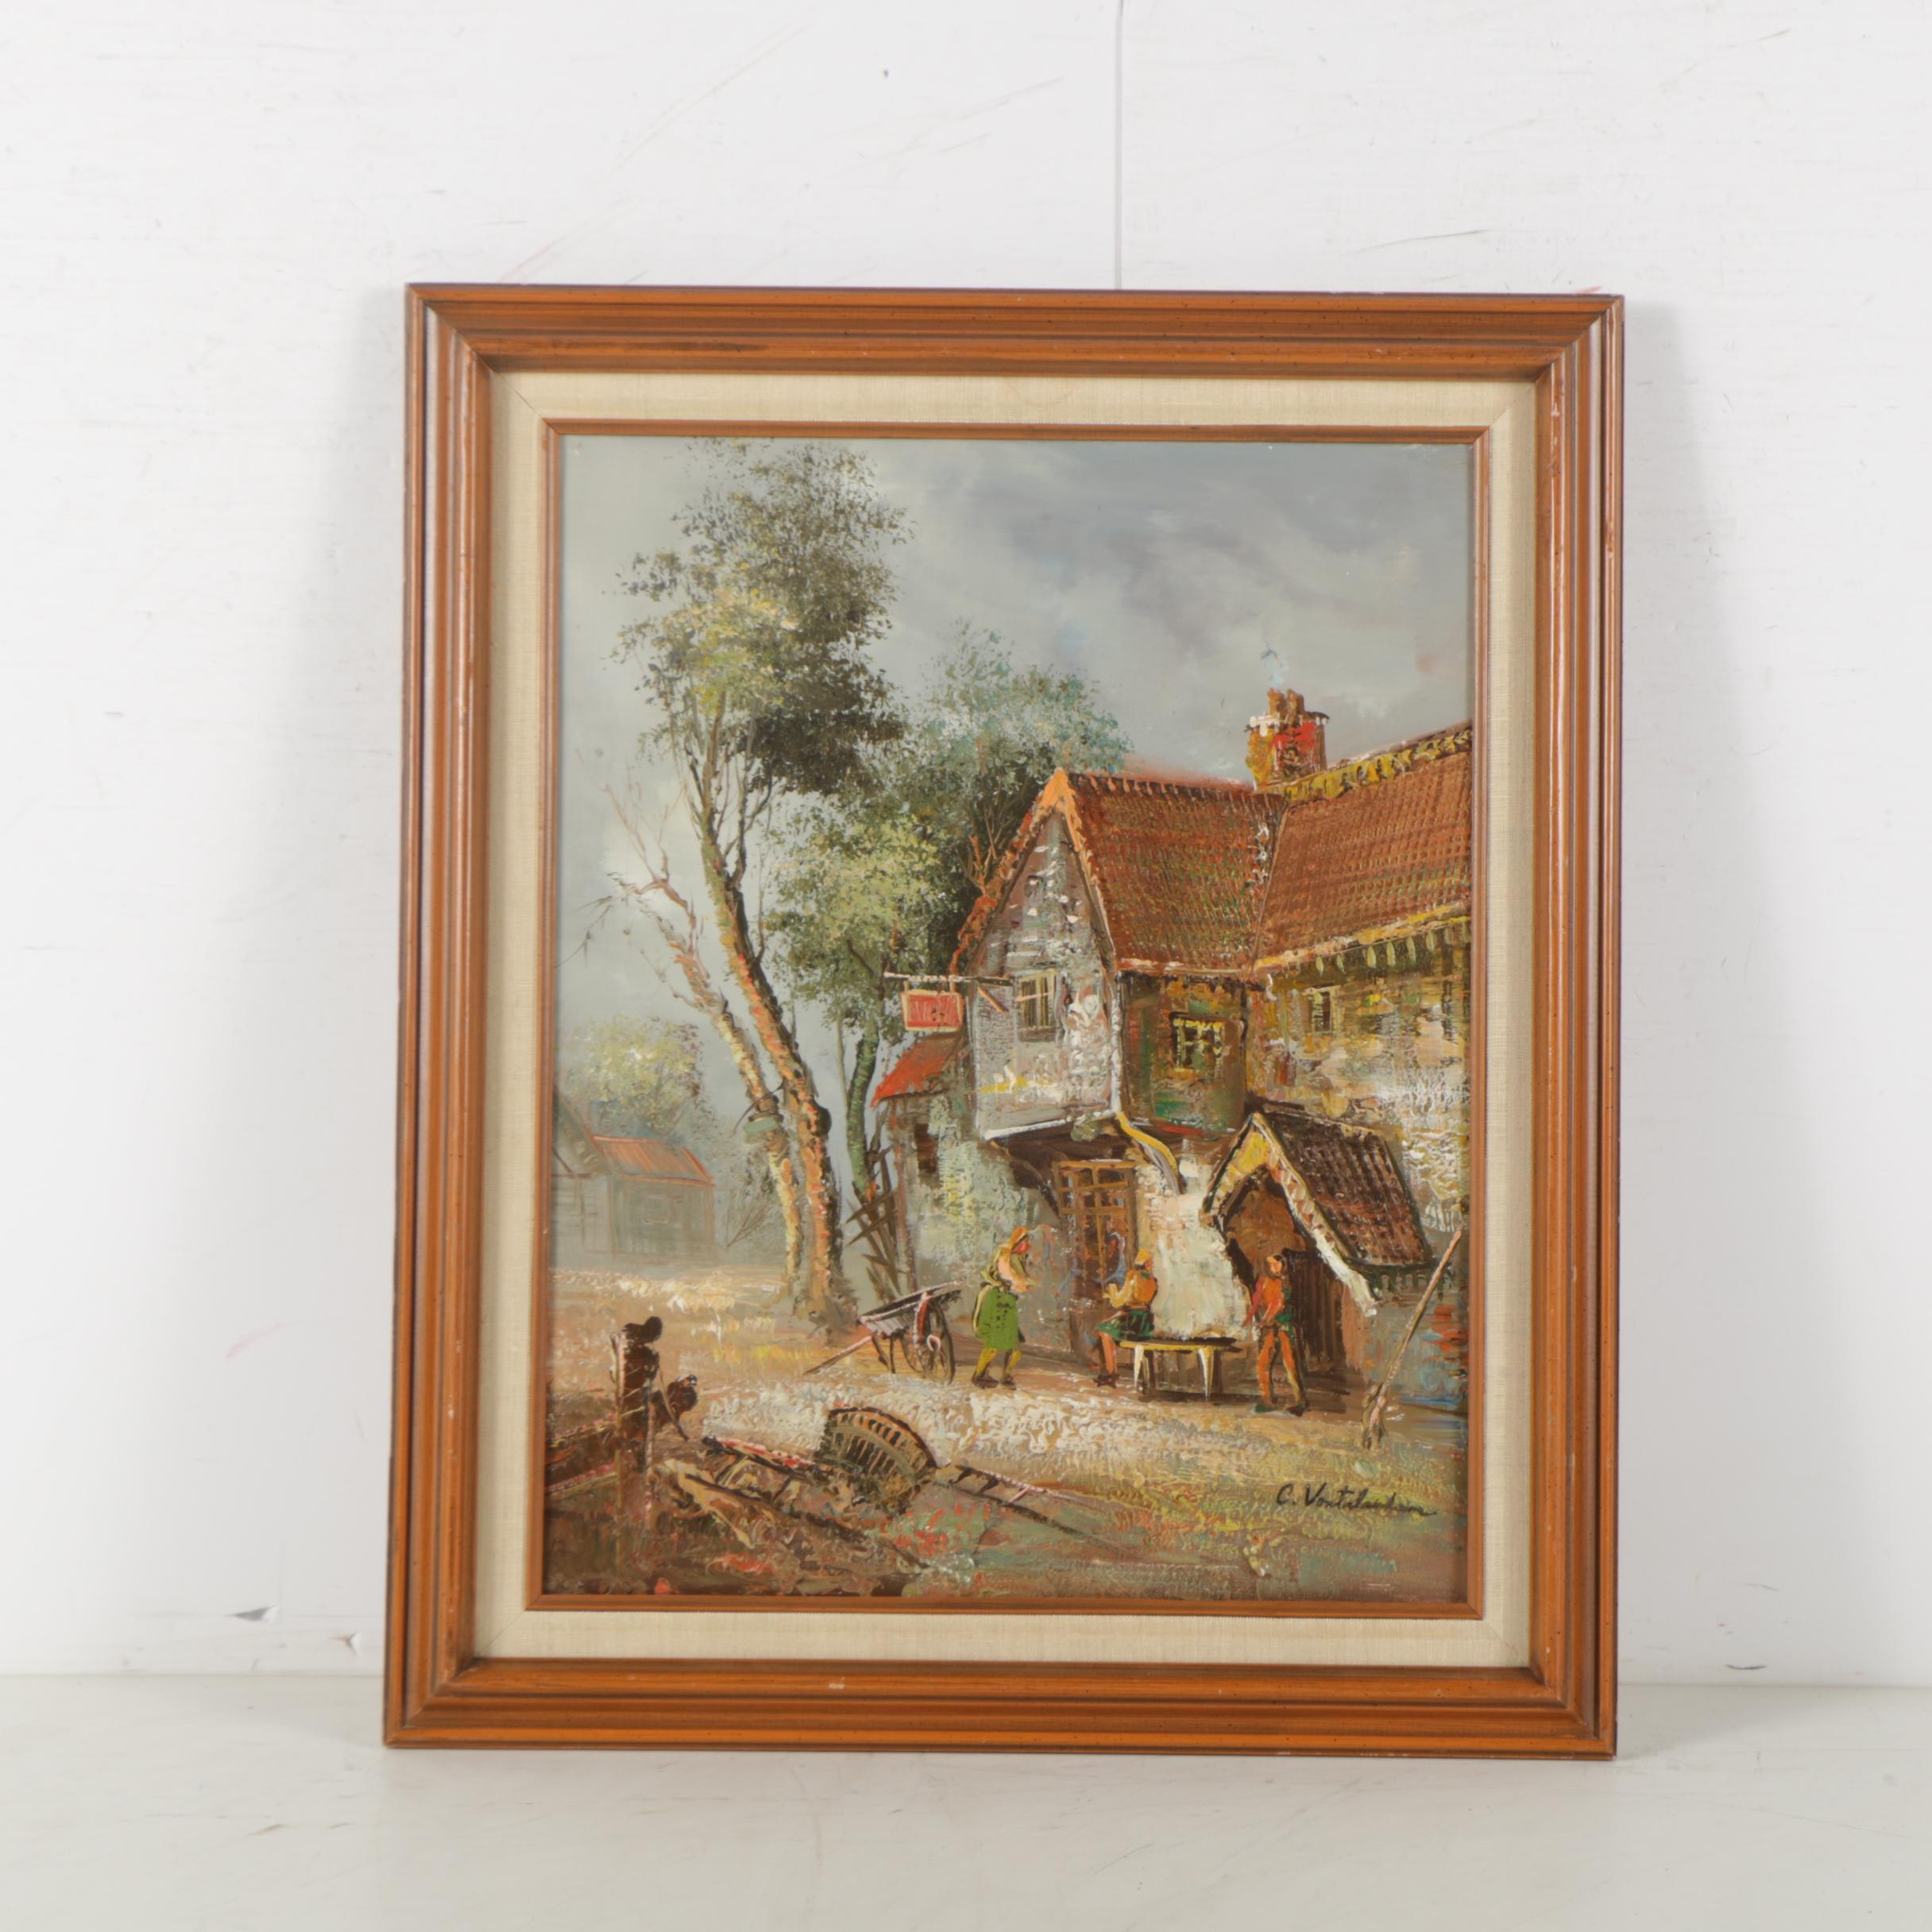 Oil Painting on Canvas of a Village Scene